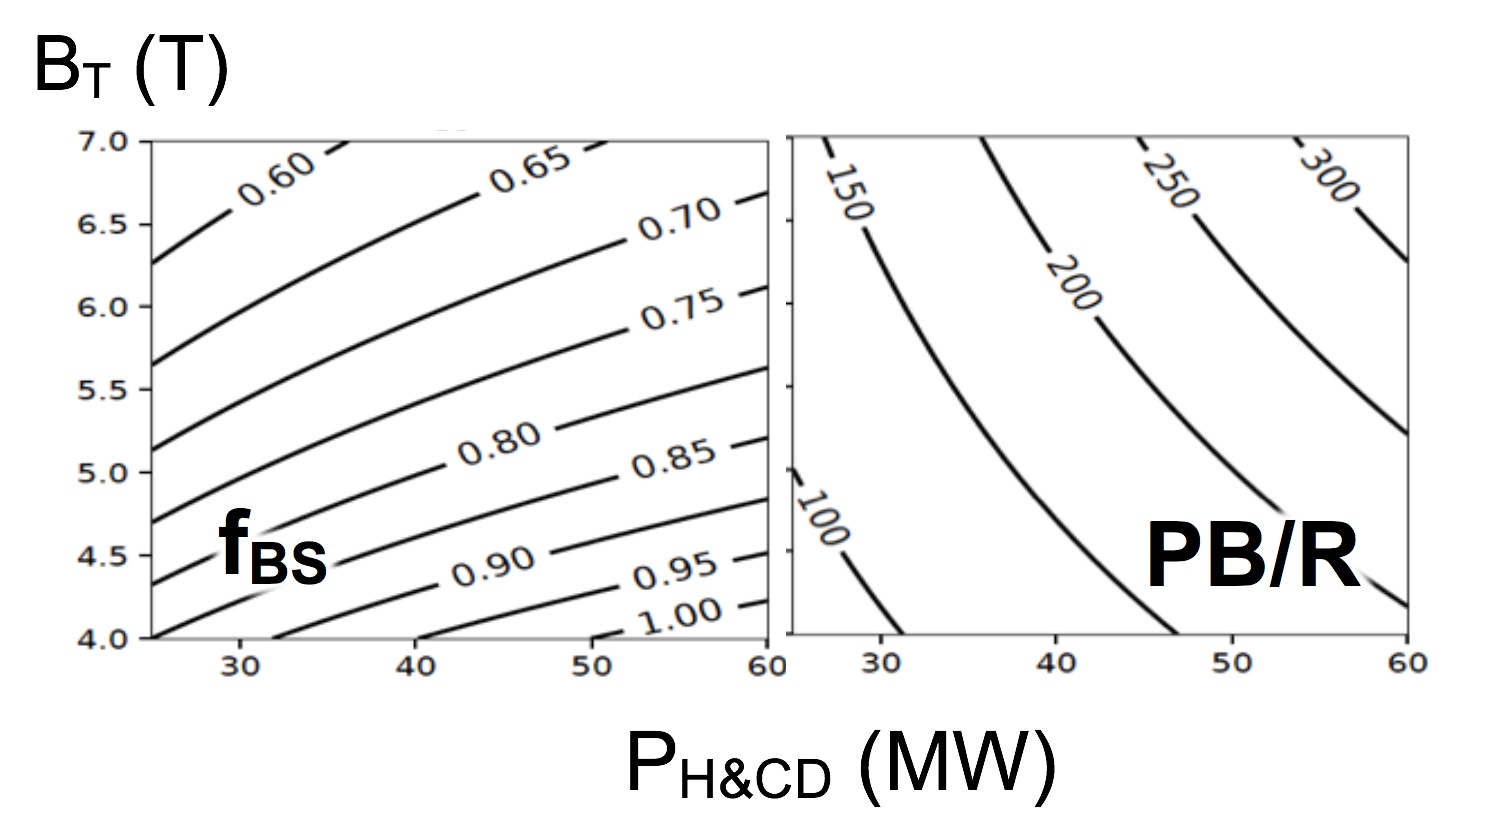 Bootstrap fraction and $PB/R$ for SHPD with $R=1.25m$, $A=2.5$, $q_{95}=8$ and pedestal at 90% of Greenwald density.